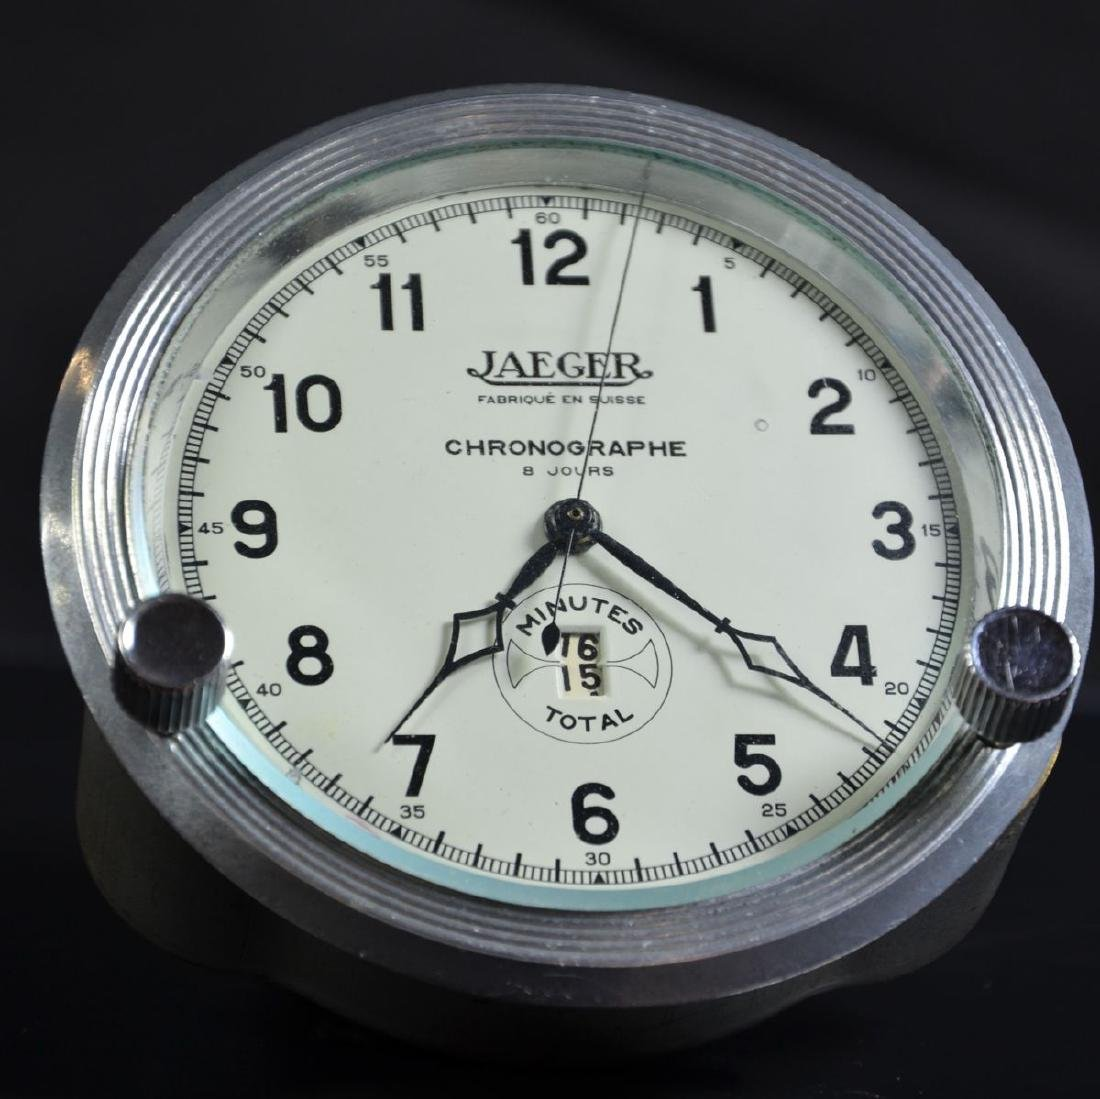 On board chronograph by Jaeger. 8 day mechanism. Very